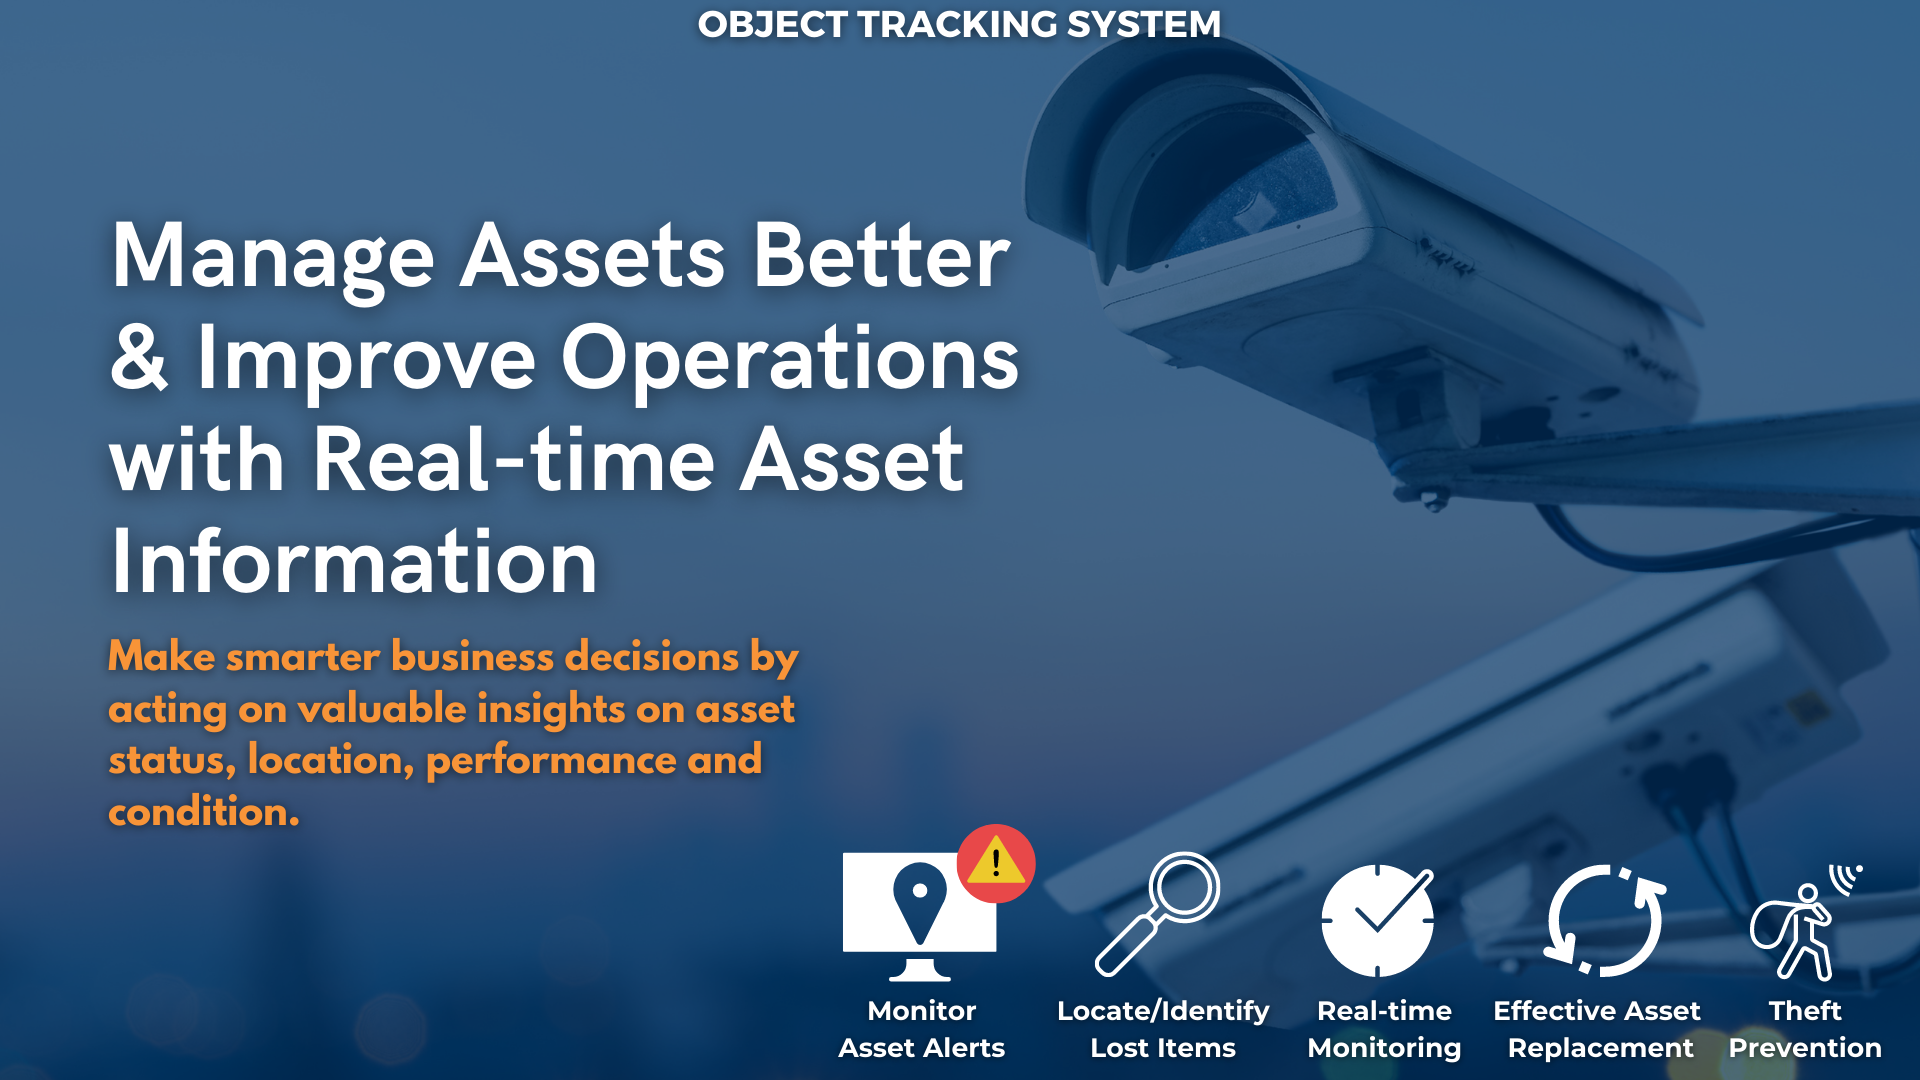 Object Tracking System 2